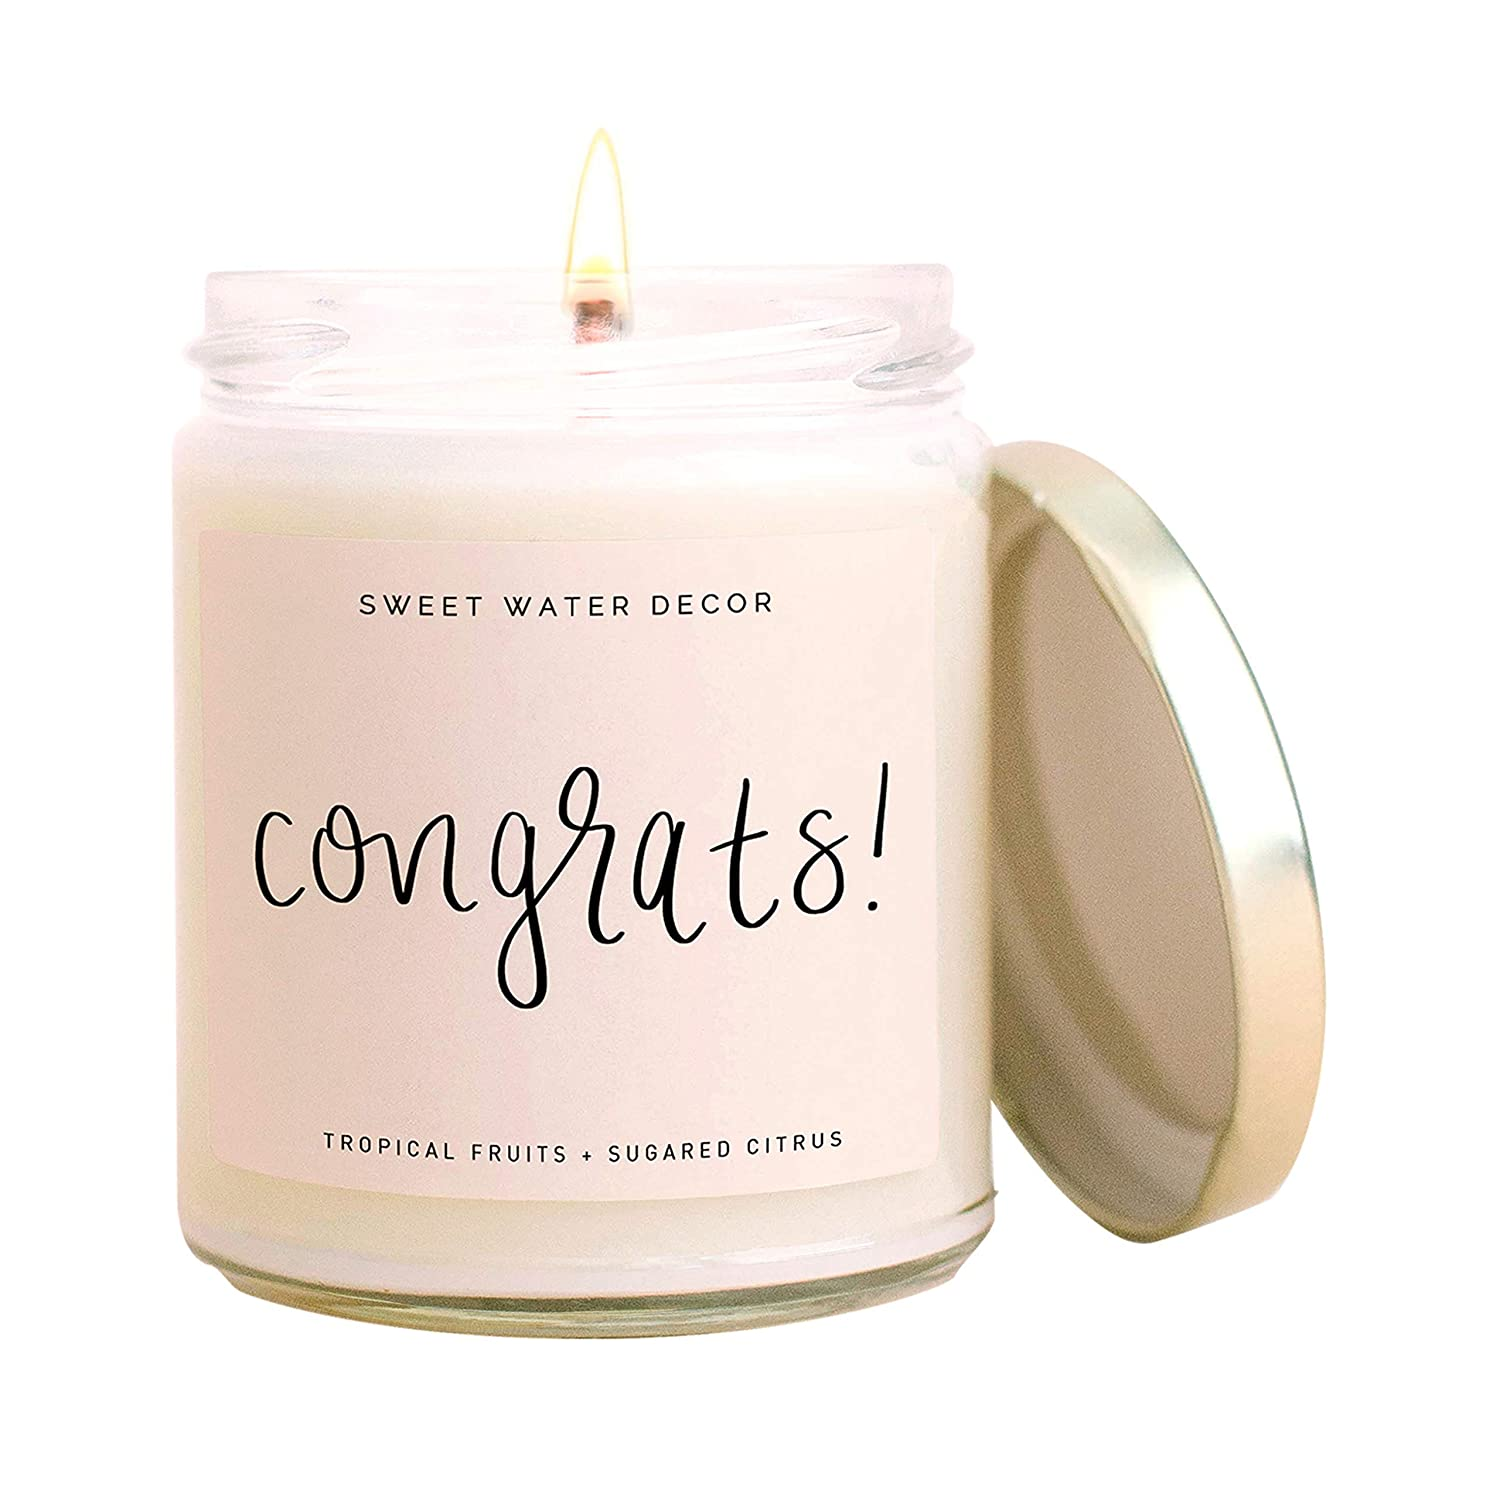 Sweet Water Decor, Congrats! Tropical Fruits and Sugared Citrus Island Scented Soy Wax Candle for Home   9oz Clear Glass Jar, 40 Hour Burn Time, Made in the USA